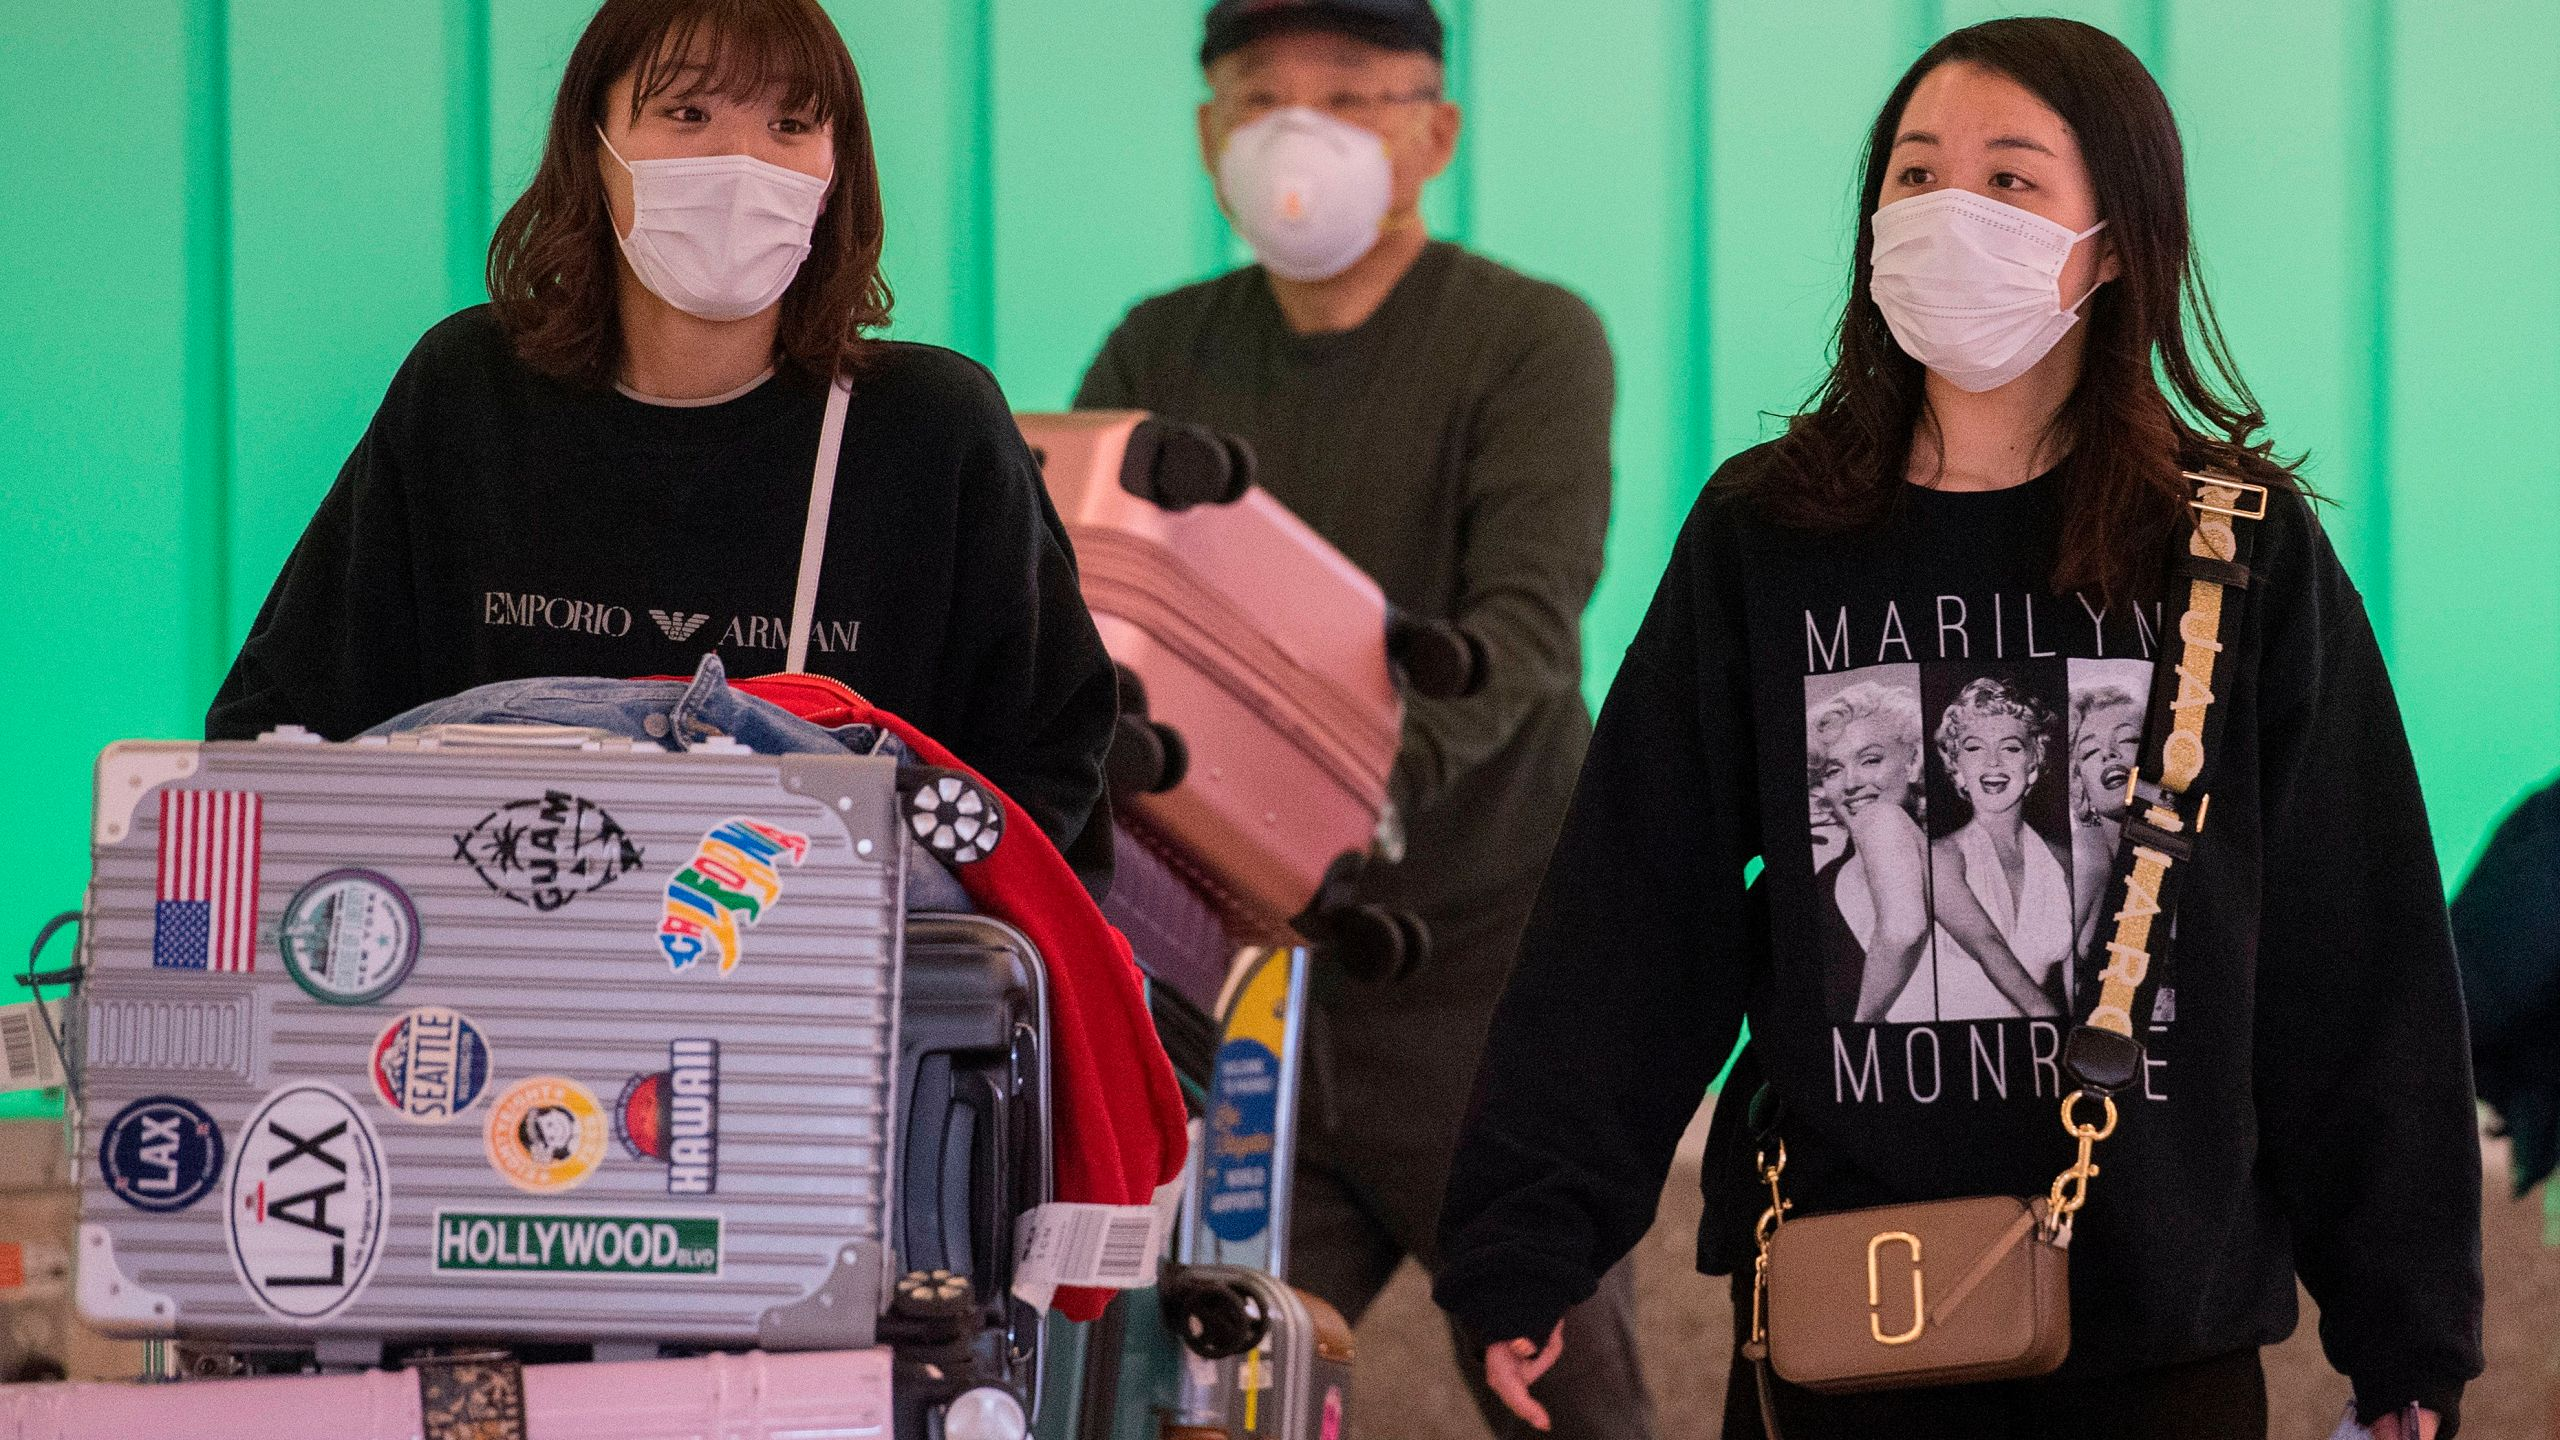 Passengers wear face masks to protect against the COVID-19 (Coronavirus) after arriving at Los Angeles International Airport in Los Angeles on March 5, 2020.(MARK RALSTON/AFP via Getty Images)